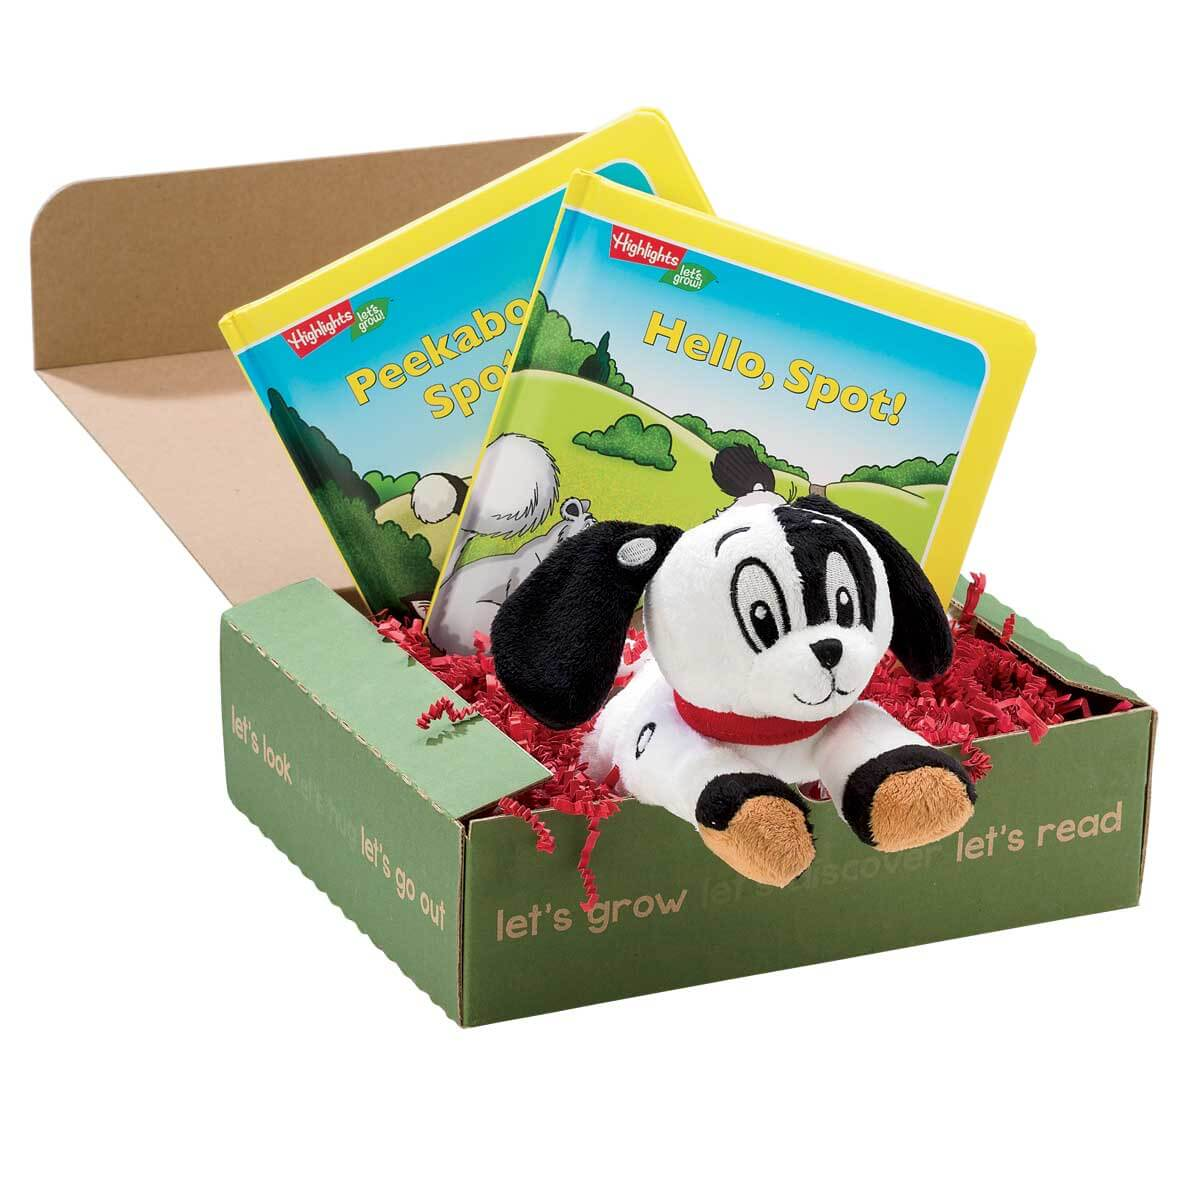 Let's Grow! Play & Learn Boxes: Baby and toddler books, gifts, toys, activities and more!